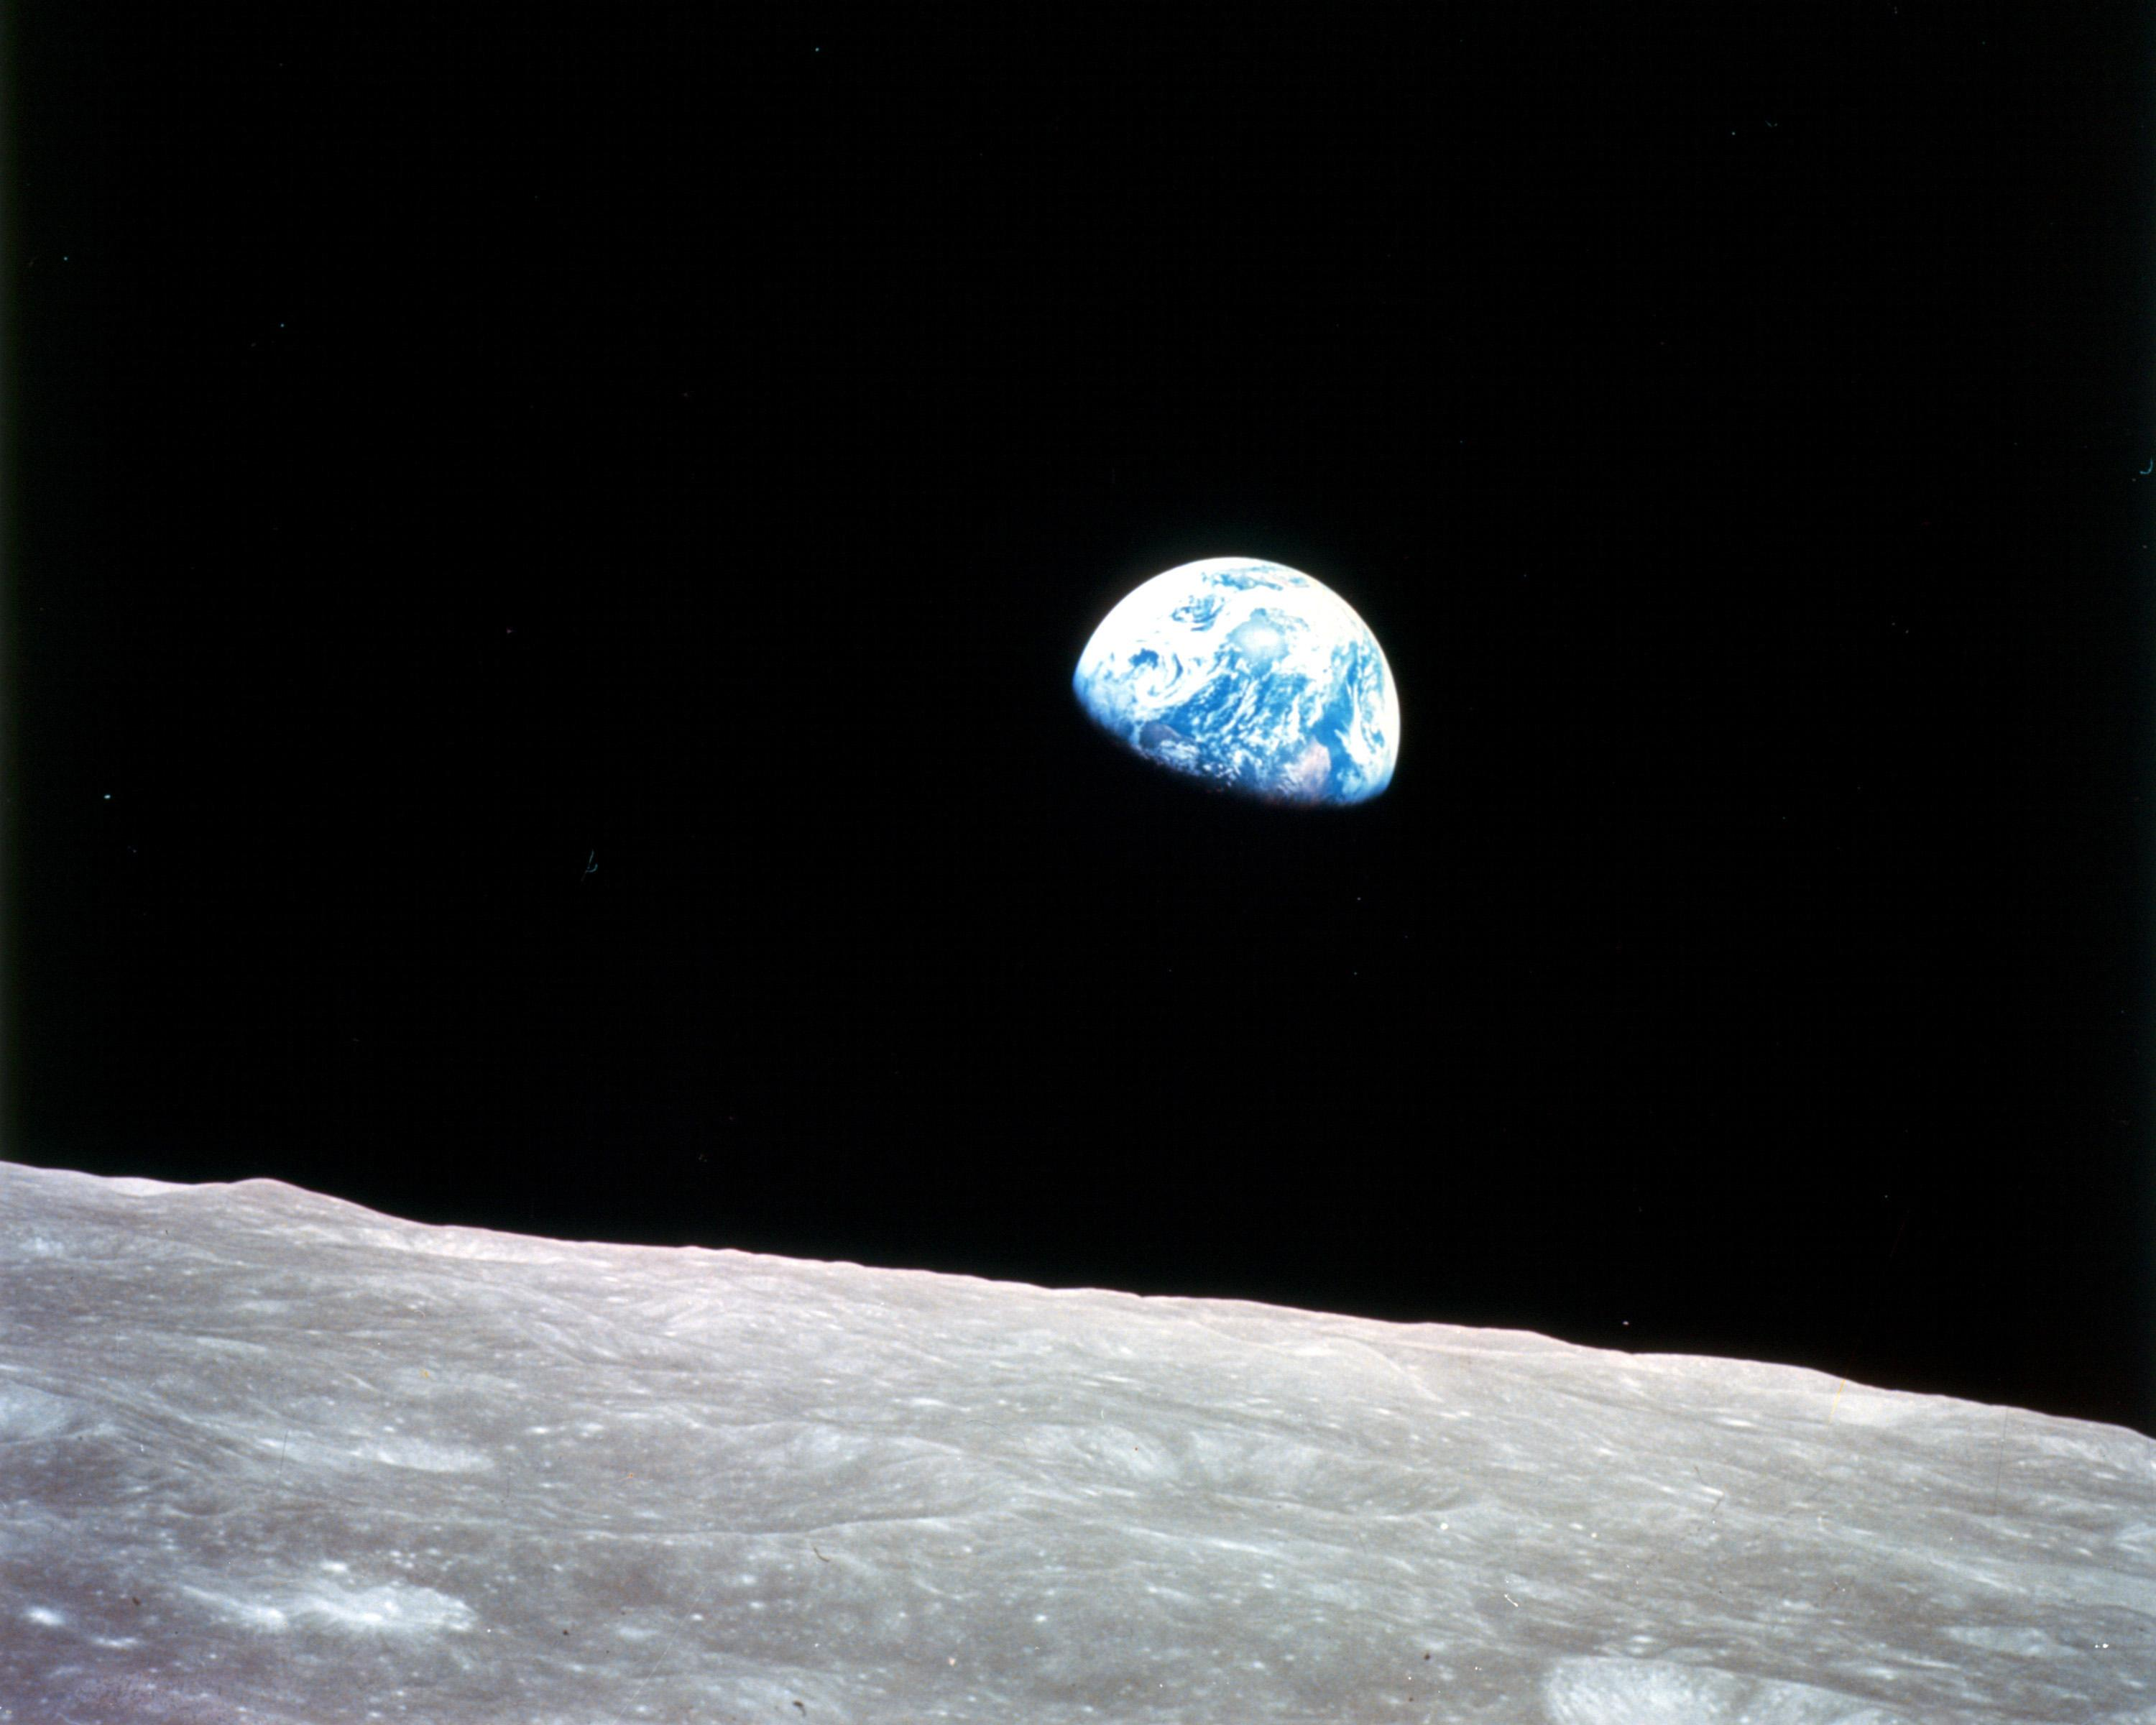 Apollo 8 Earthrise over the Moon